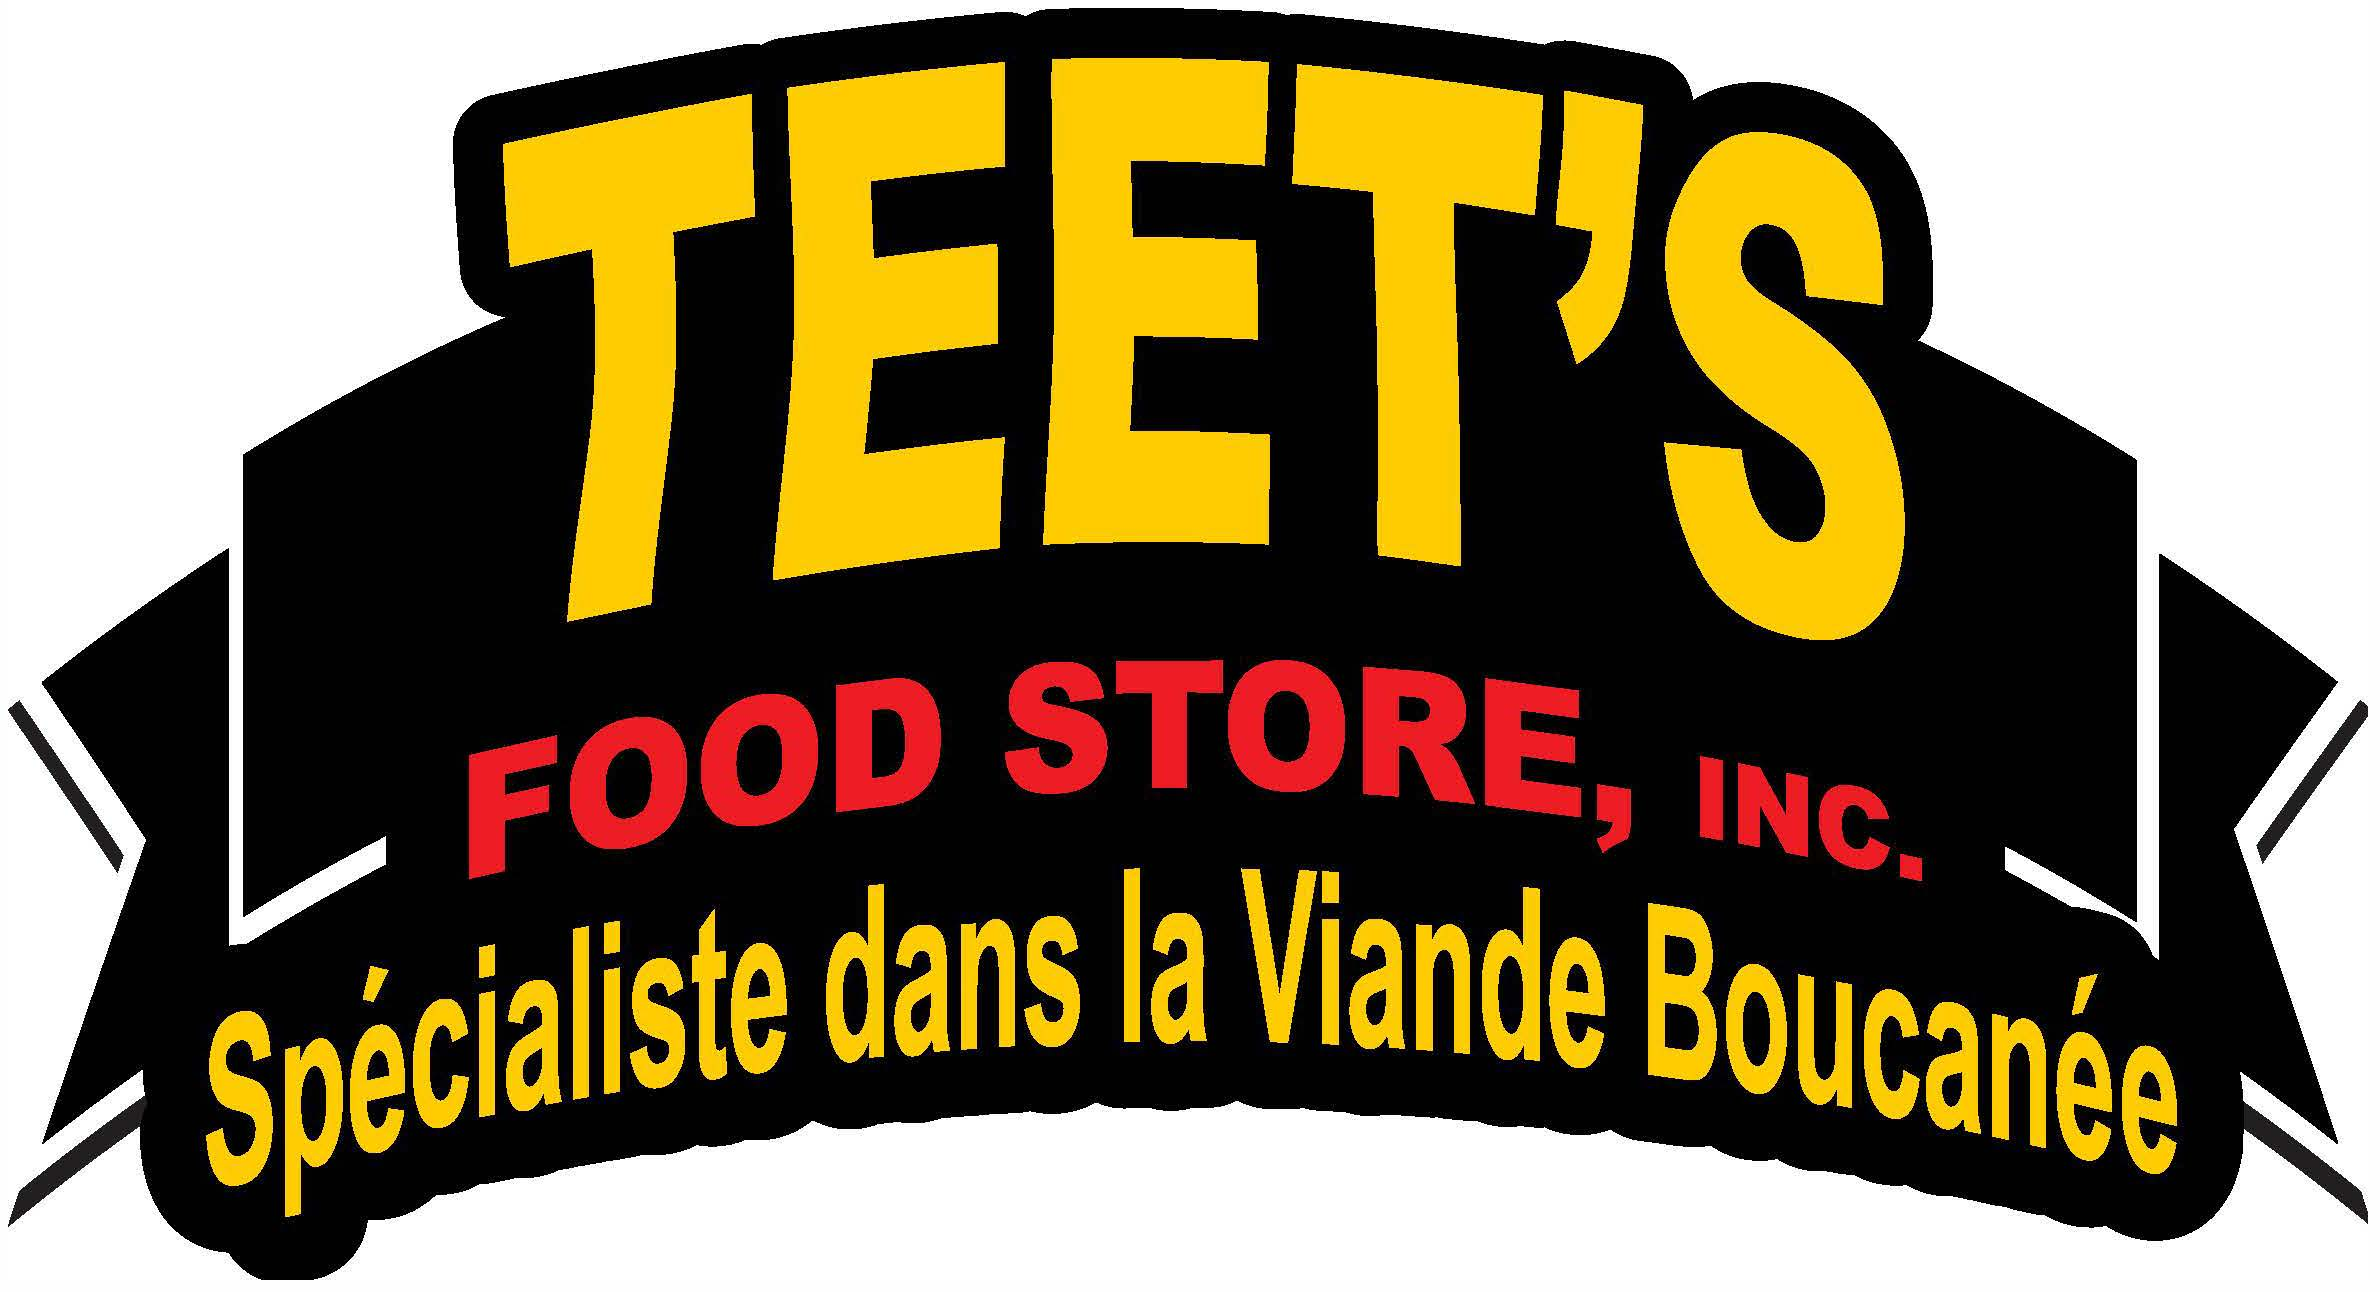 Teet's Food Store, Inc.